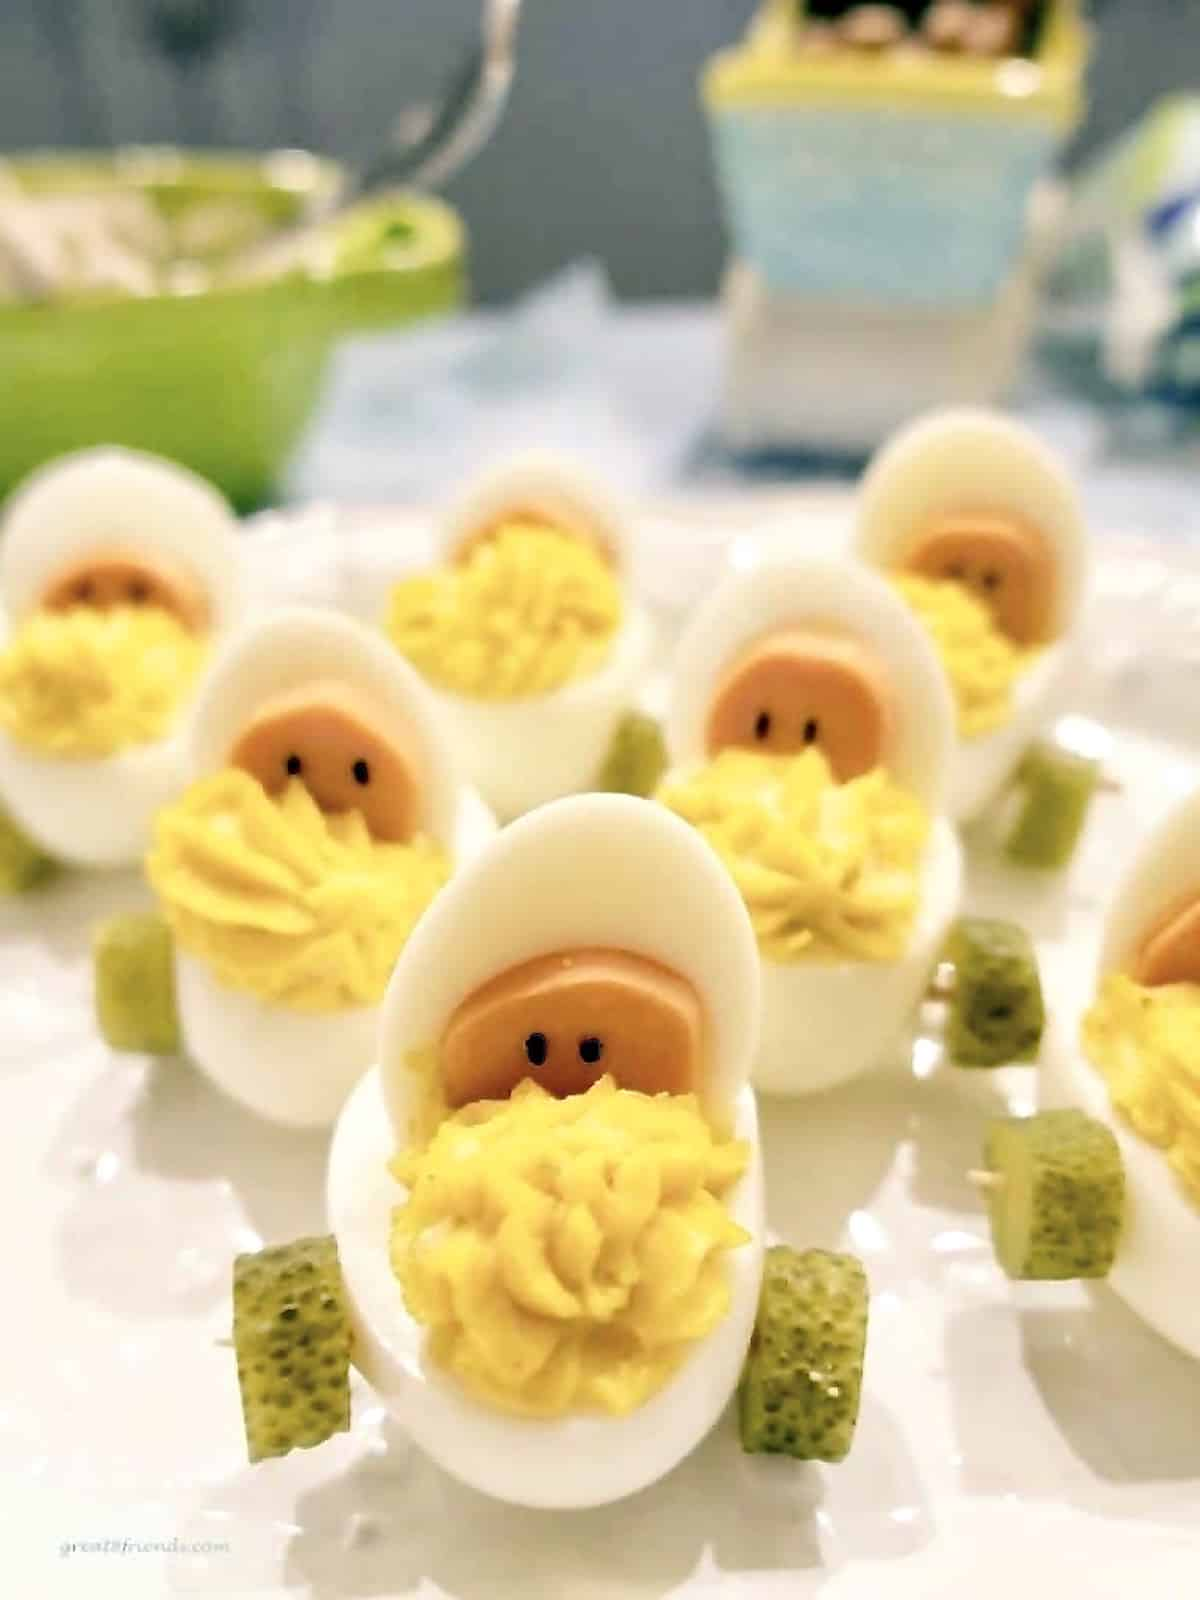 Deviled eggs prepared to look like babies in a baby carriage with sliced pickles as wheels.